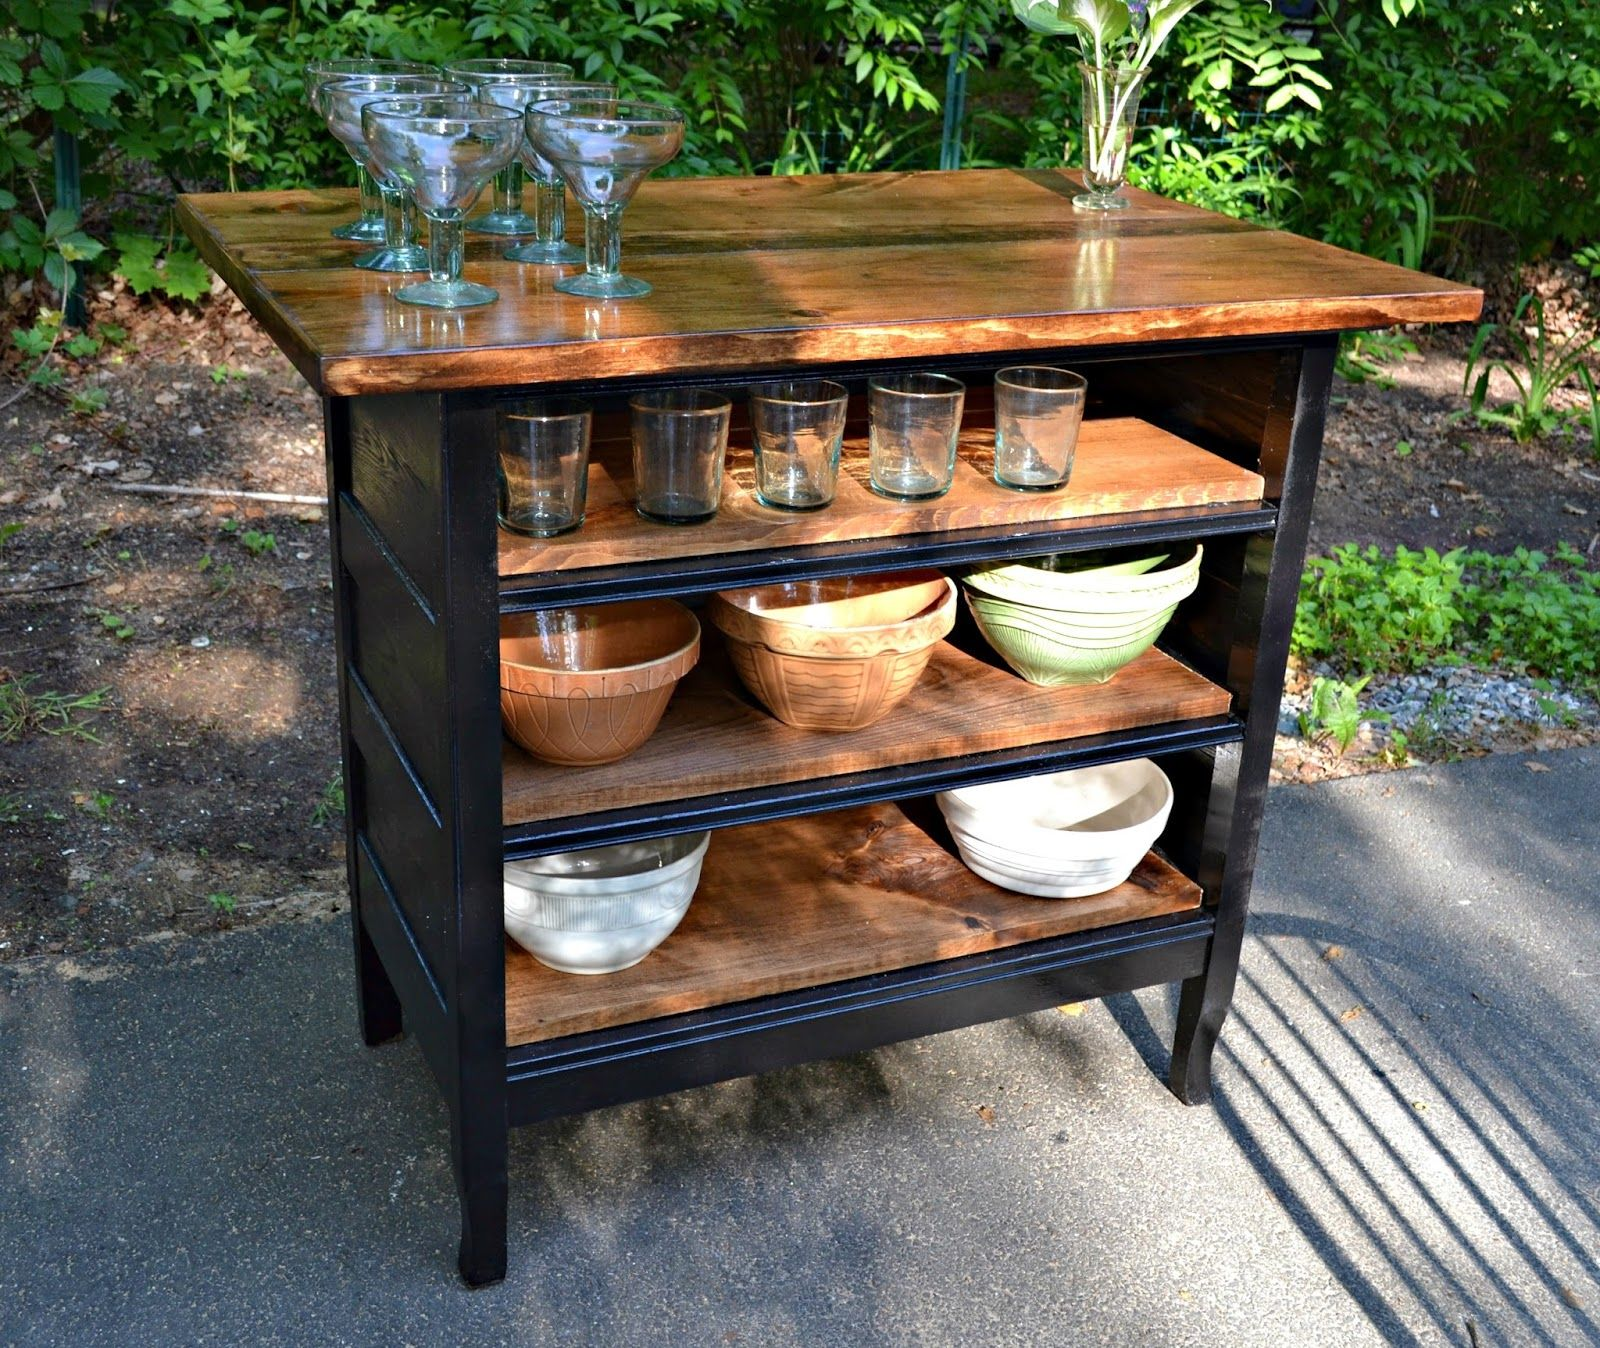 Kitchen Islands Made From Old Furniture: Heir And Space: An Antique Kitchen Island